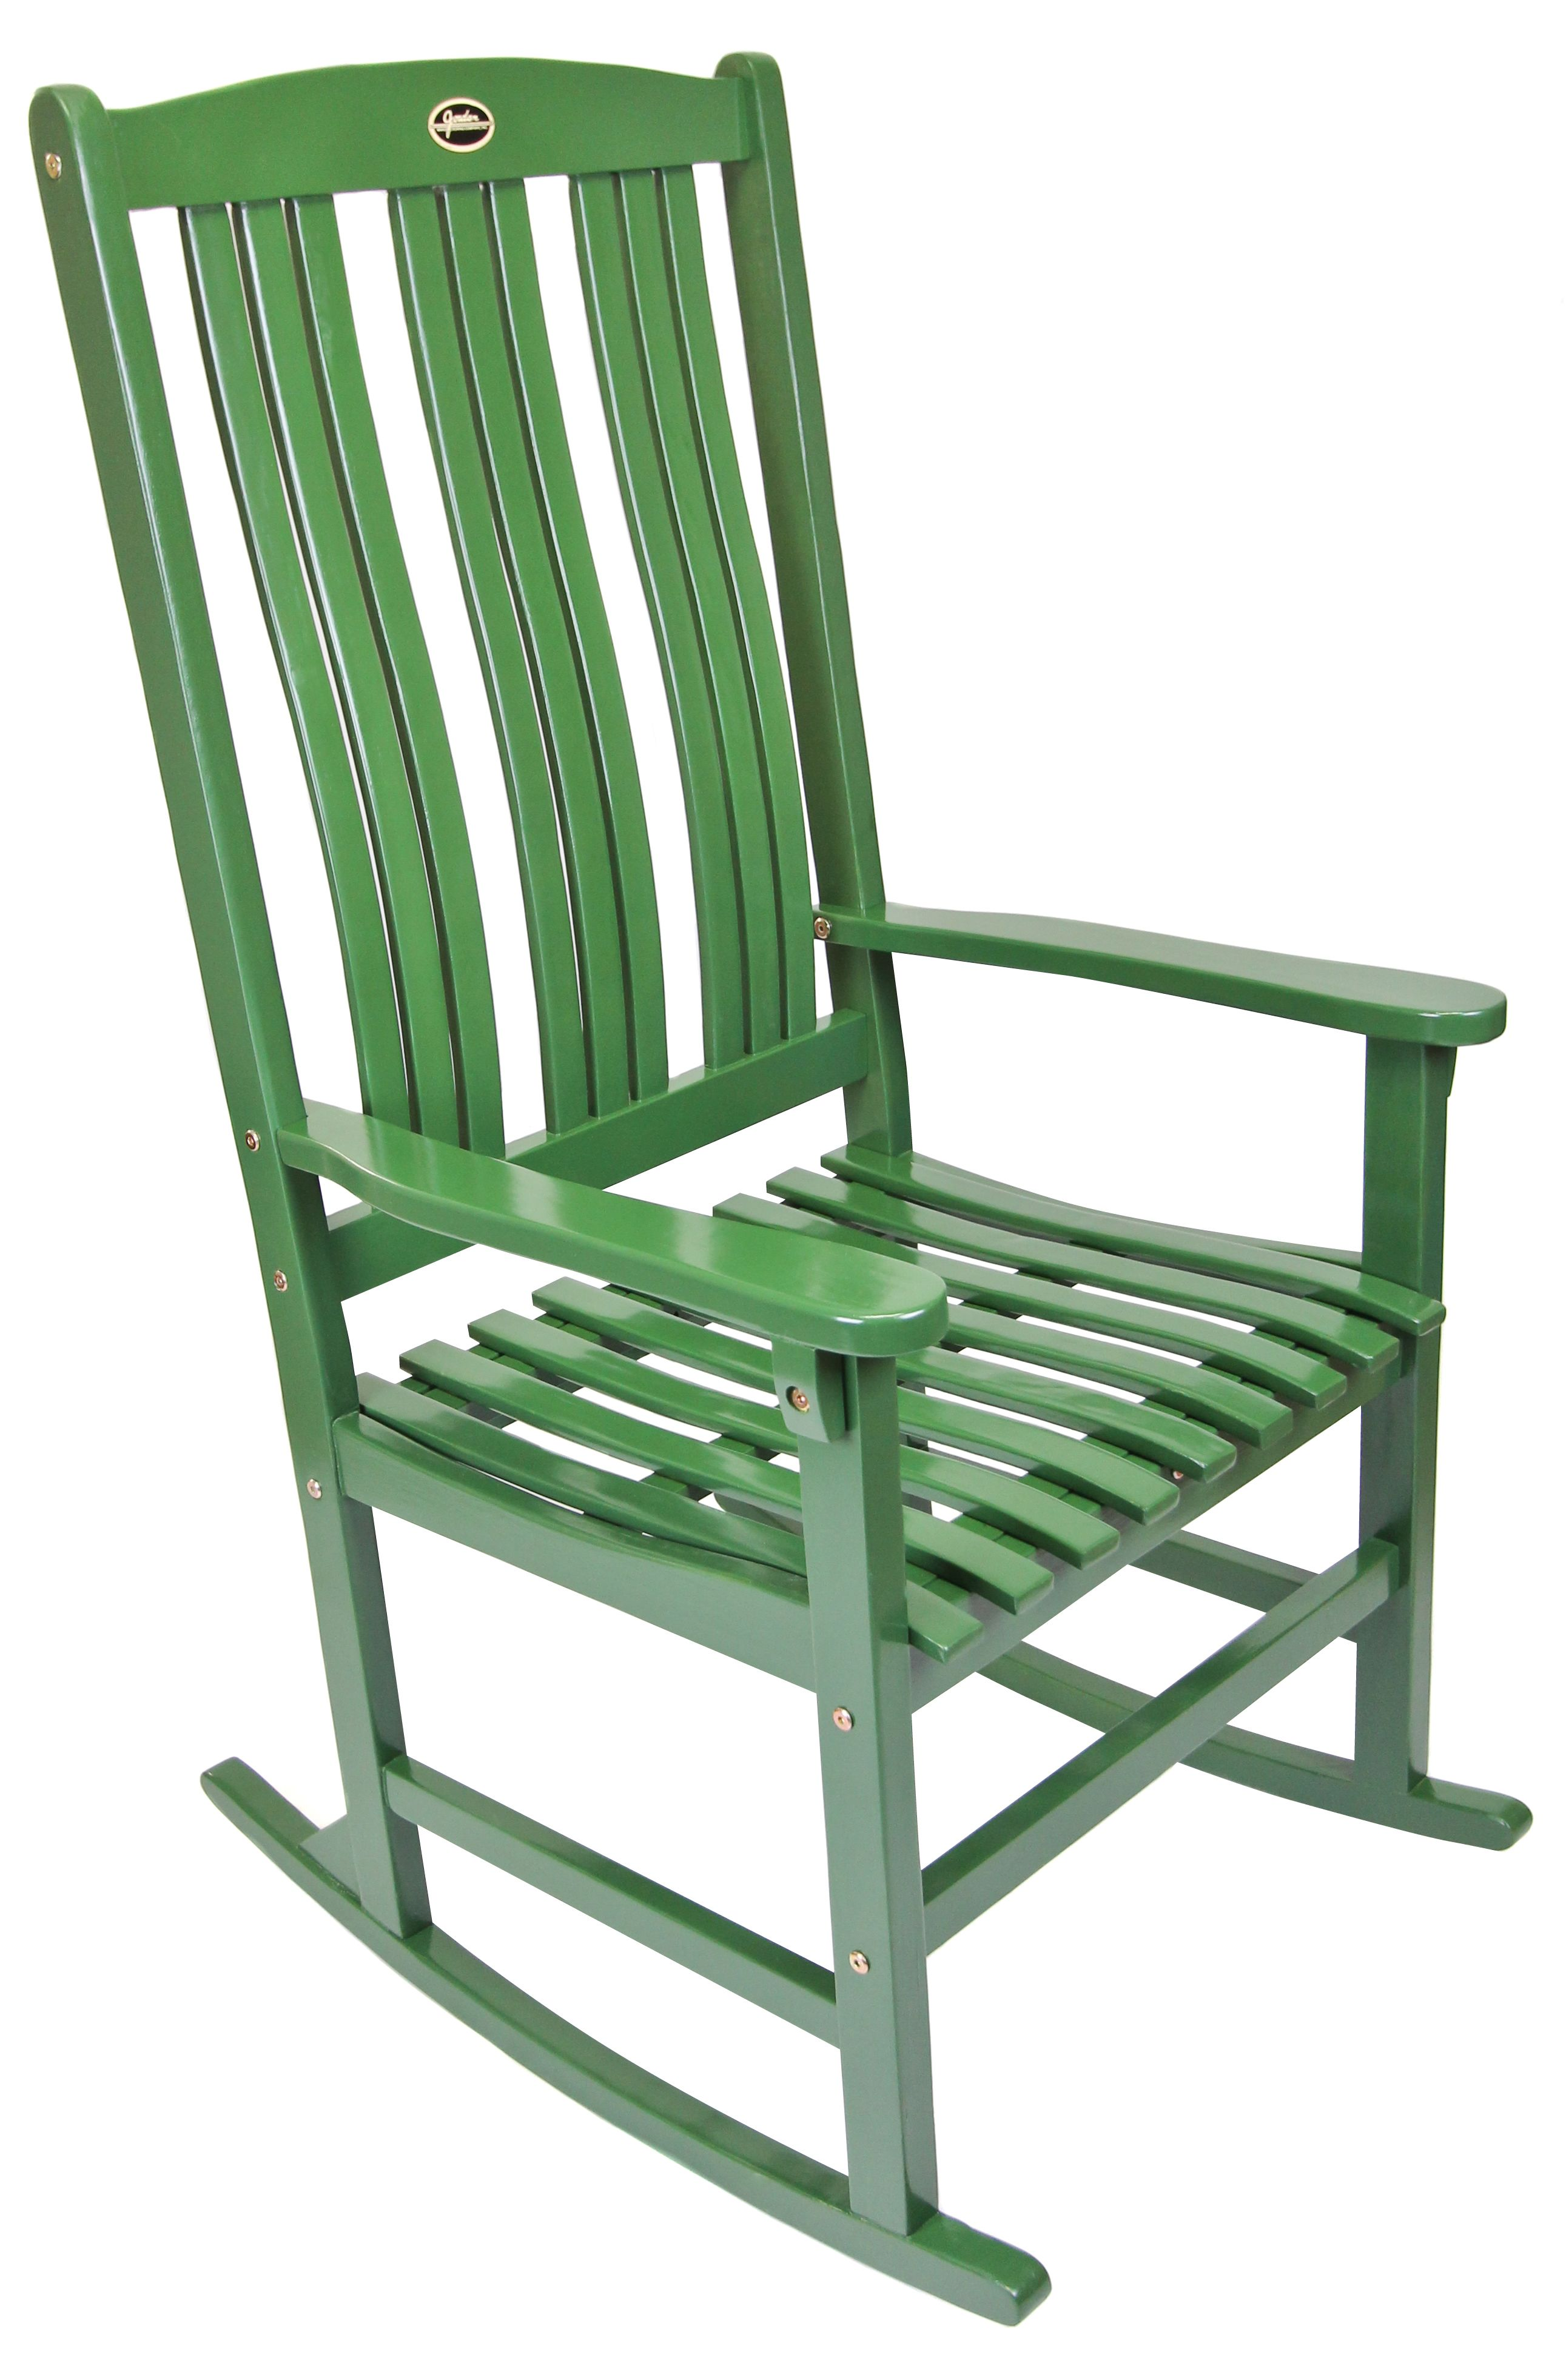 Green Southern Porch Rocking Chair from Jordan Manufacturing